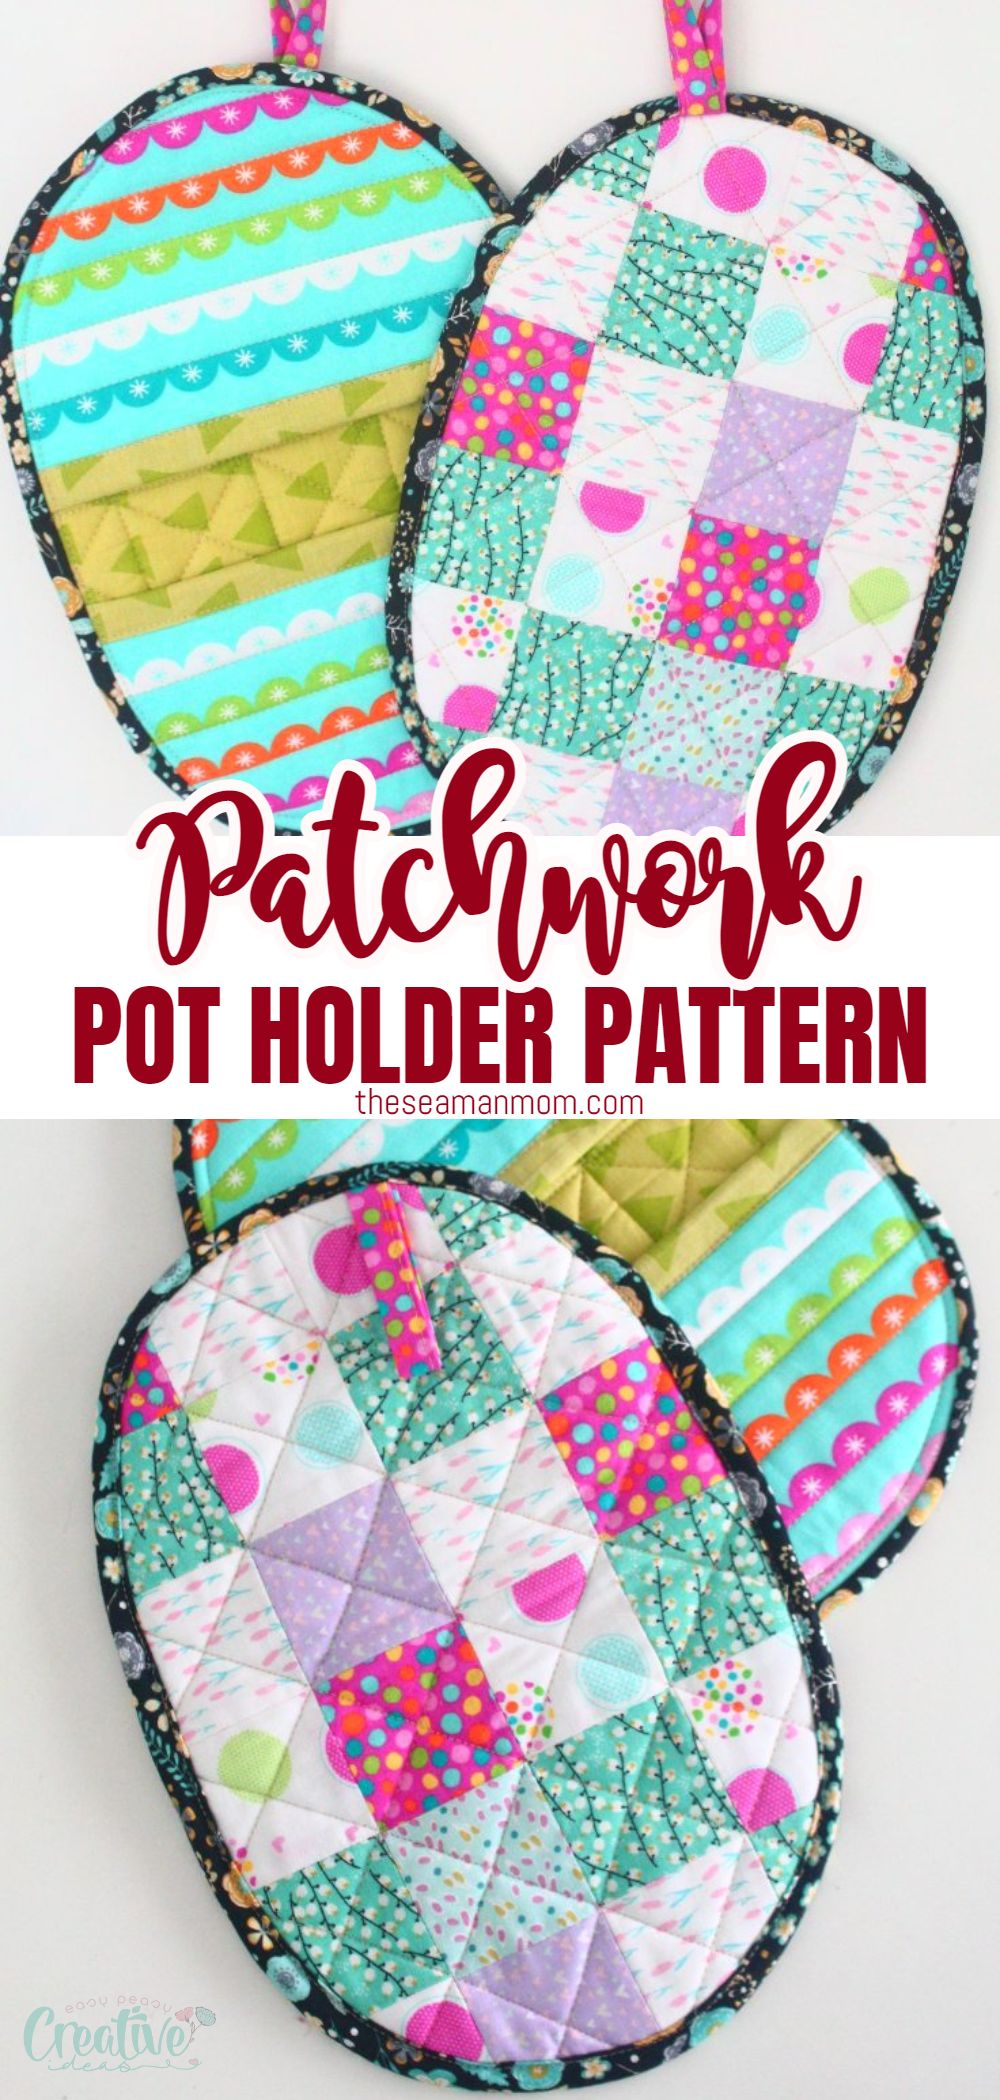 Those of us who love cooking know how important it is to have a good potholder on hand, especially if your pots have metal handles which heat up a lot! This is a quick an easy tutorial for making your own rounded patchwork quilted potholders at home. via @petroneagu